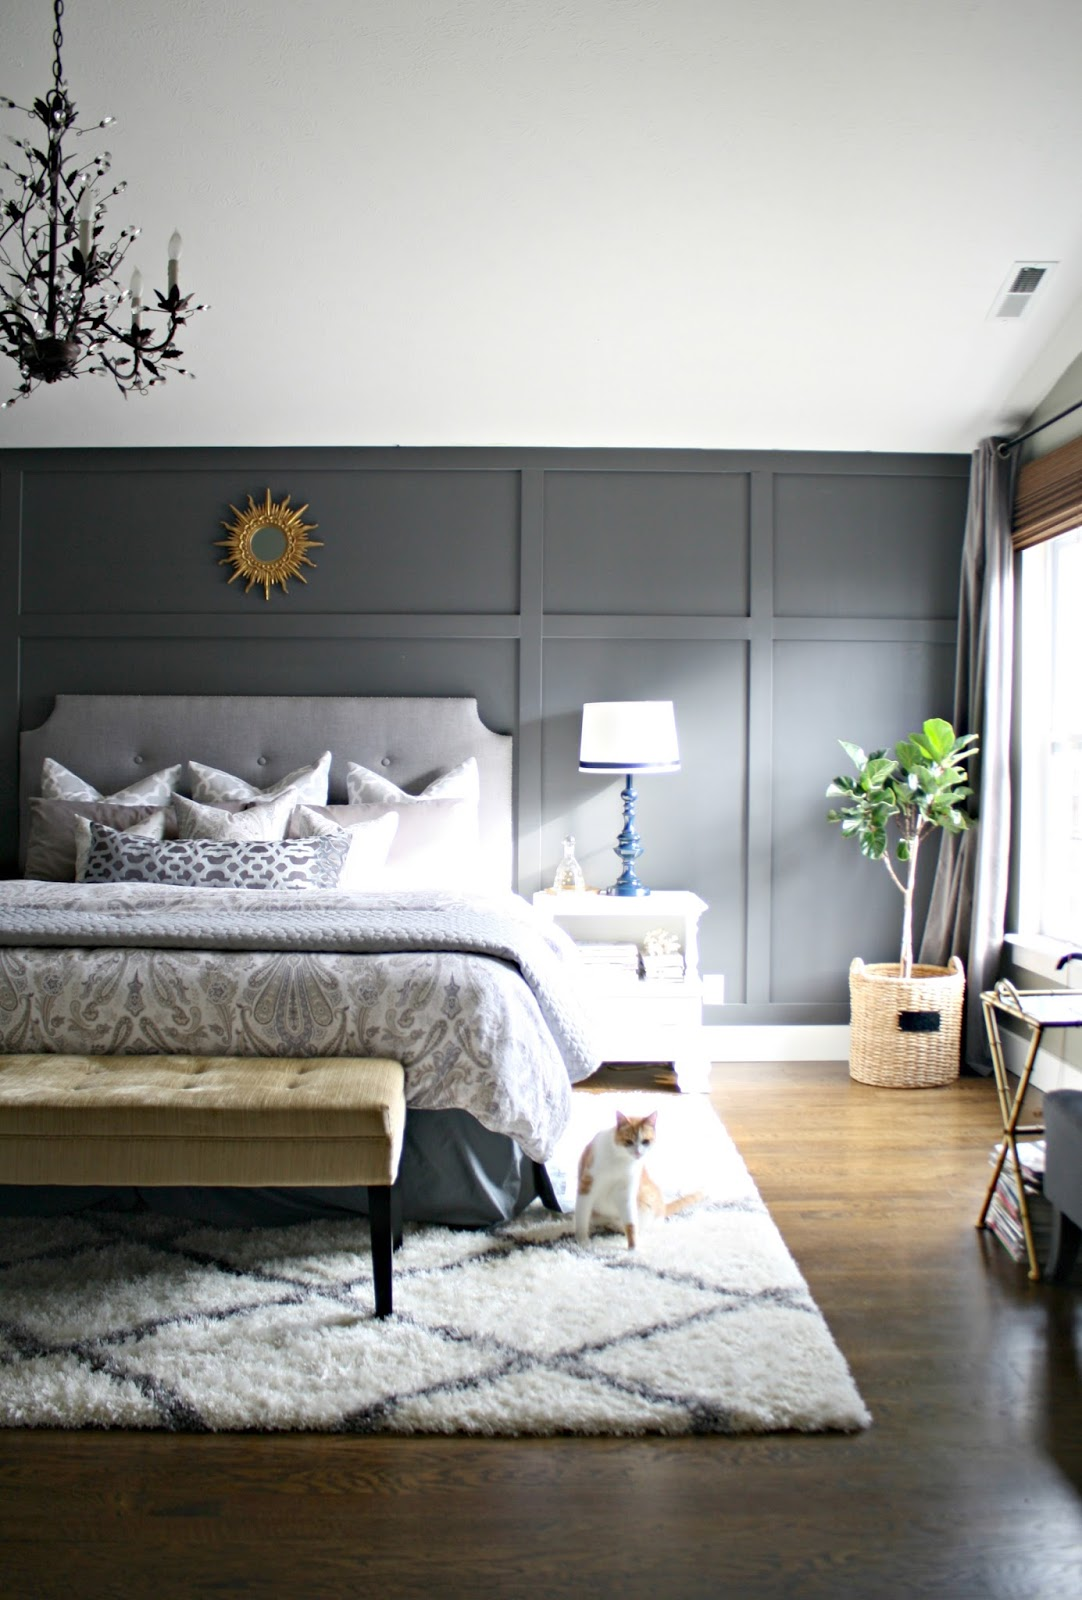 gray wall behind bed with trim